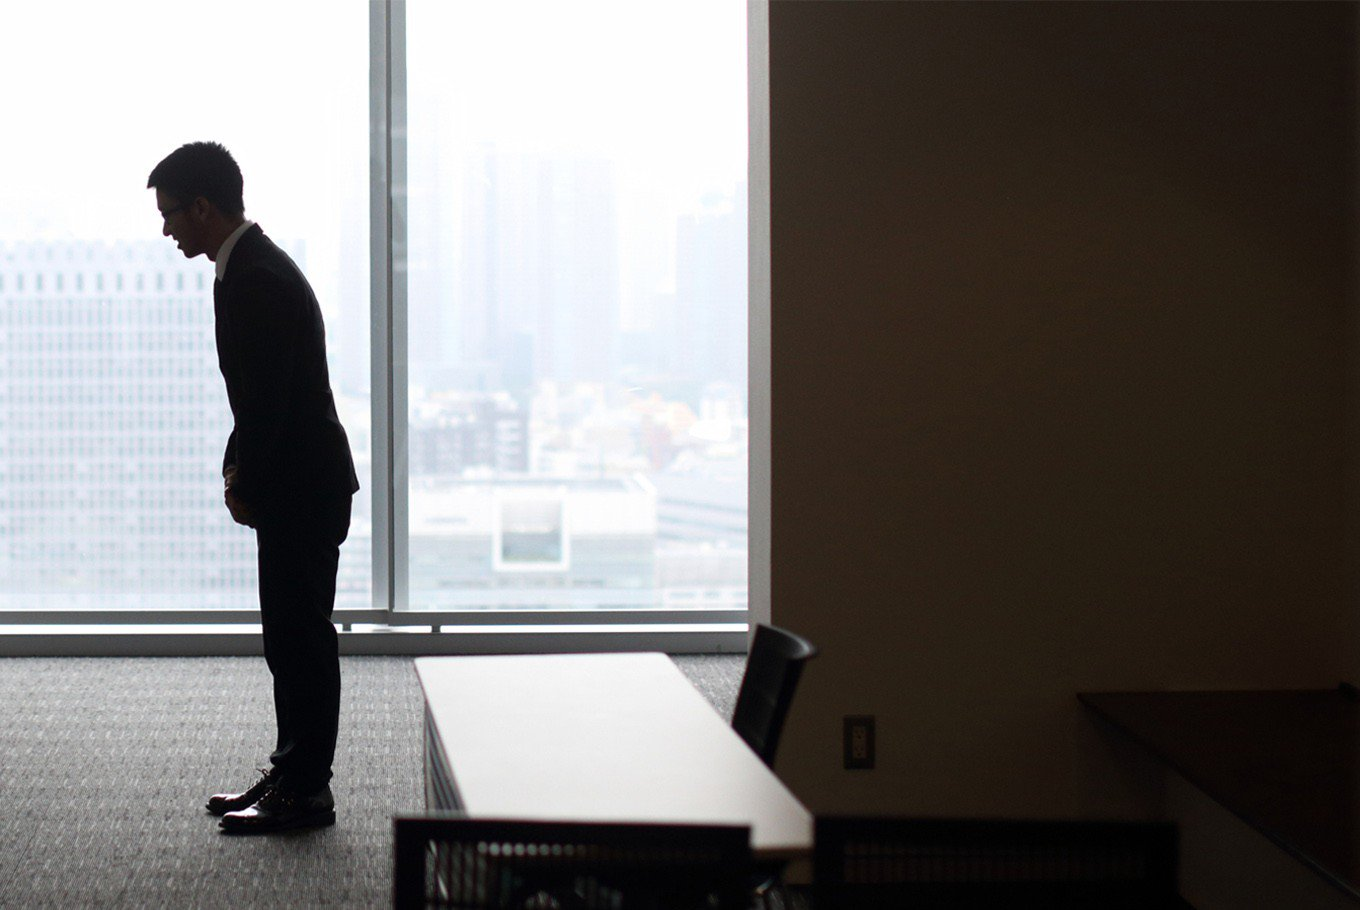 A student bows at a jobs fair in Tokyo. (Bloomberg/Tomohiro Ohsumi)